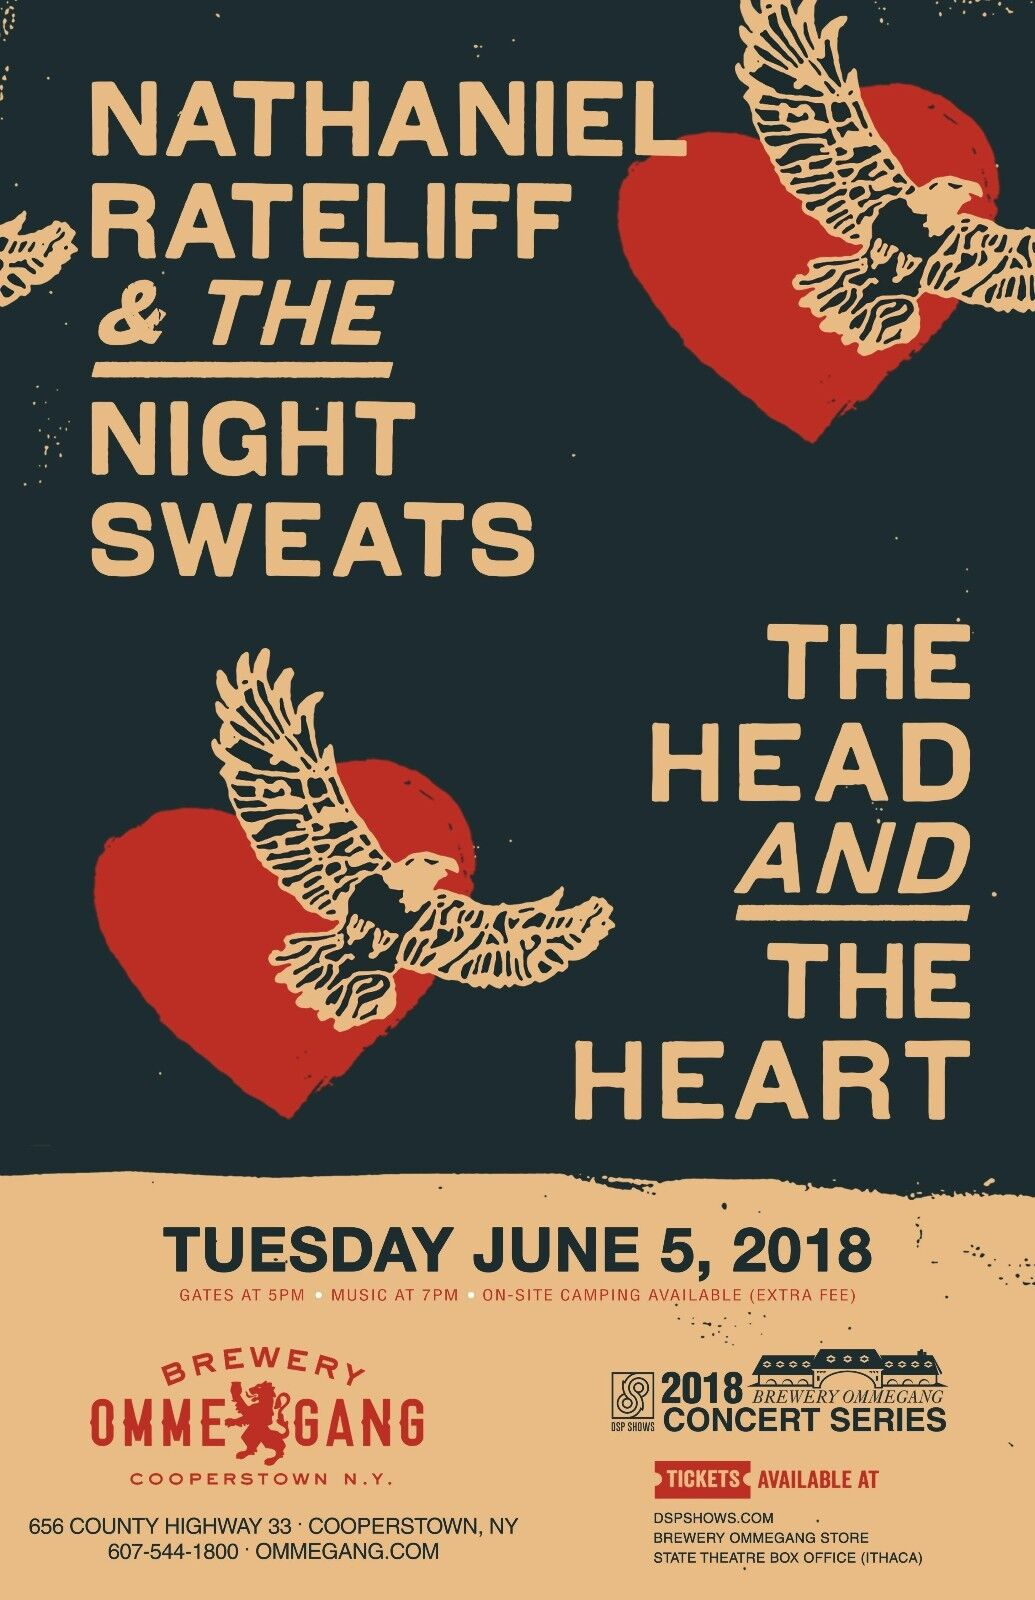 NATHANIEL RATELIFF NIGHT SWEATS/HEAD HEART 2018 NEW YORK CONCERT TOUR POSTER - $10.99